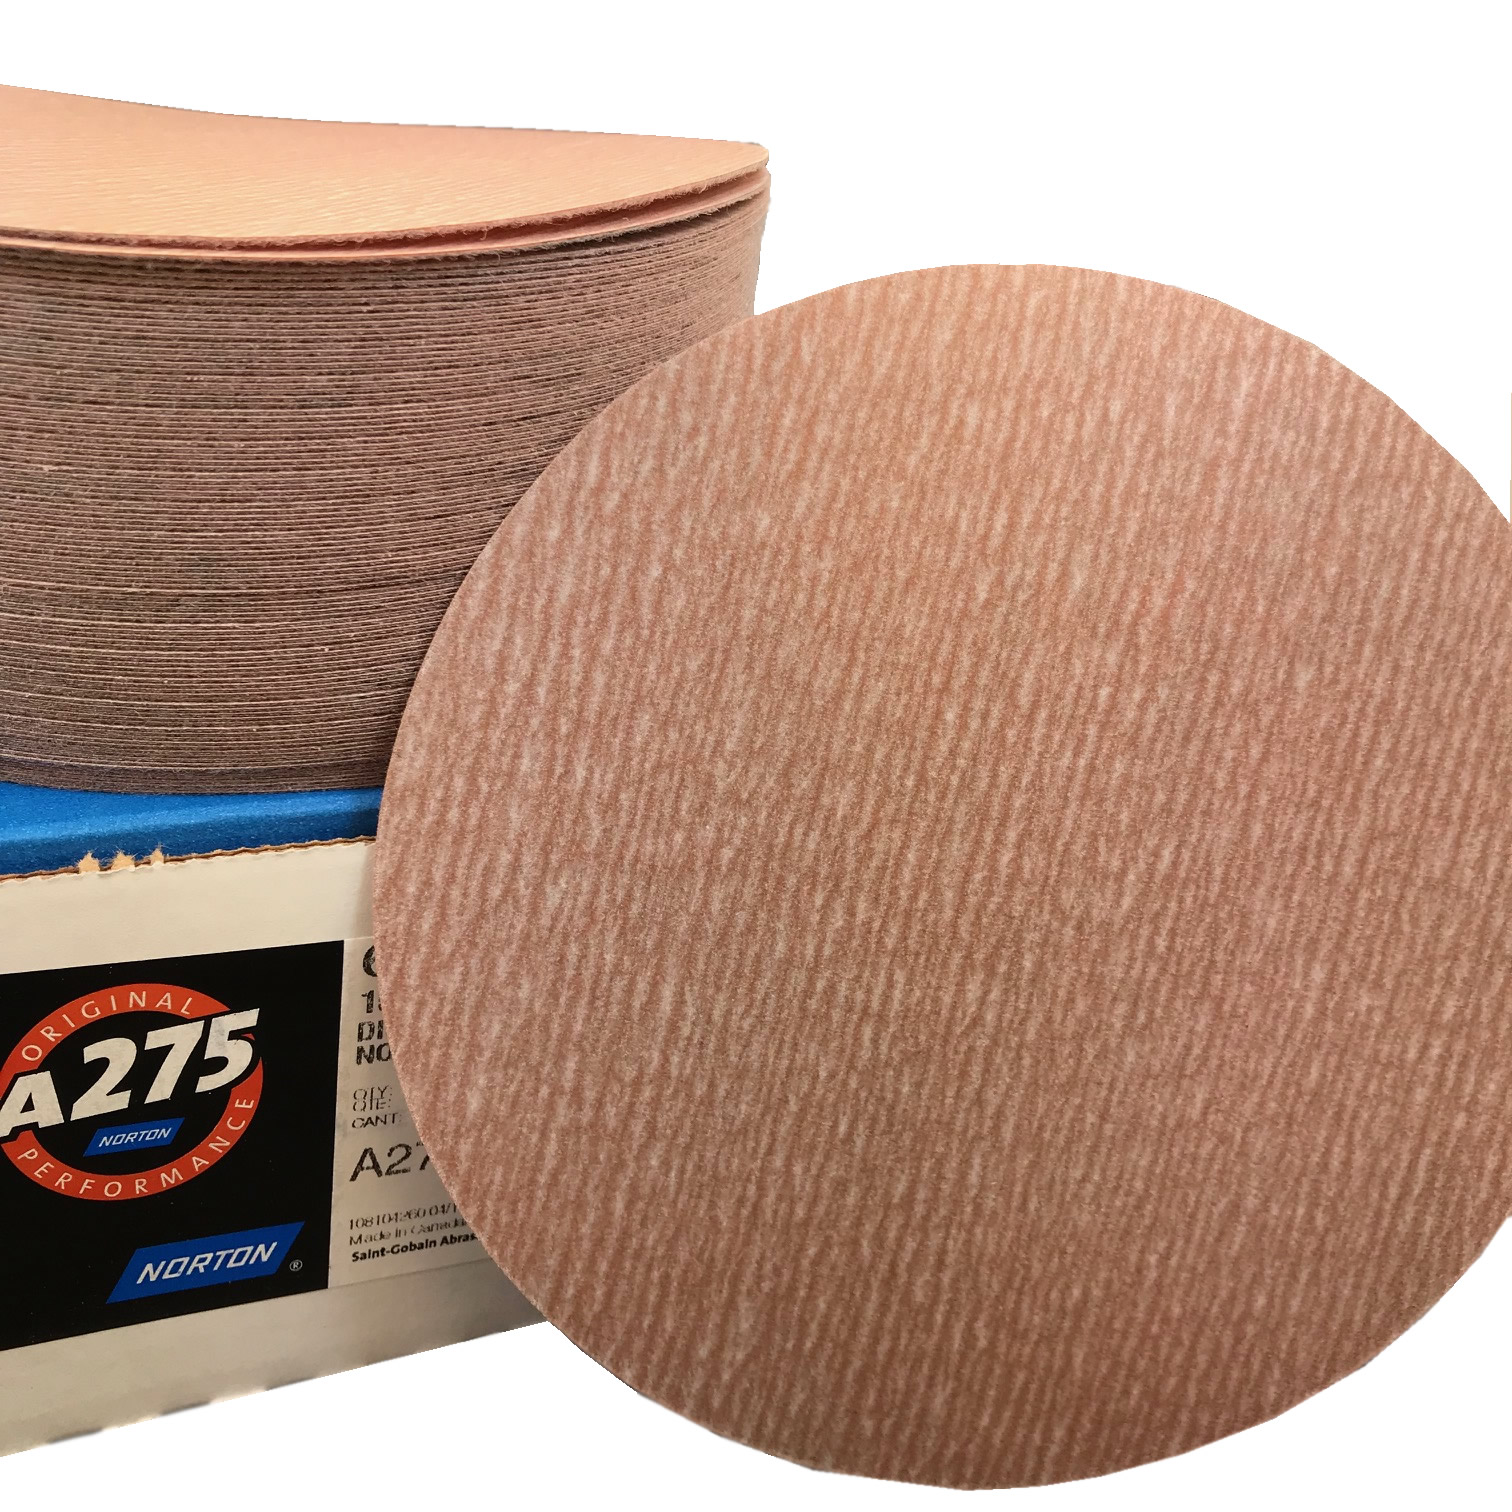 A275 NorGrip Hook and Loop 6 Inch Discs Grits 80 - 1500 by Norton Abrasives